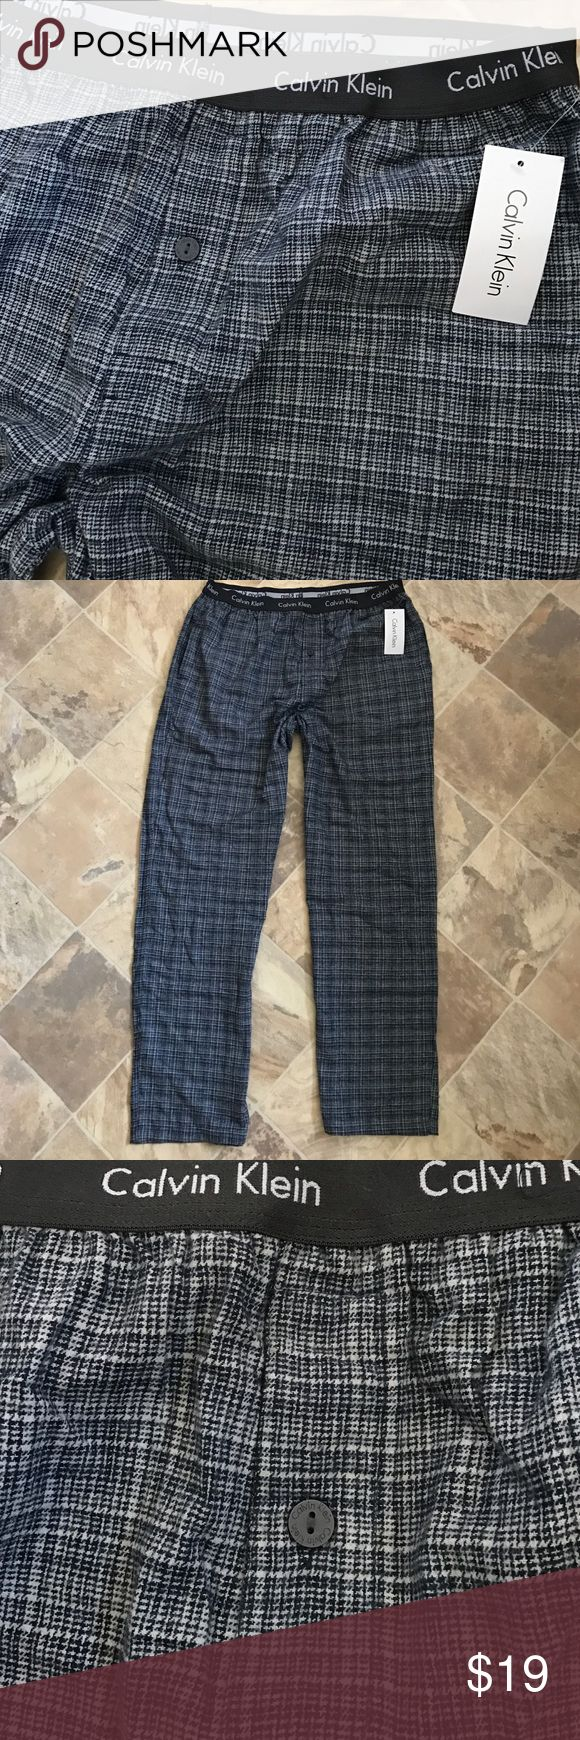 Calvin Klein Men Underwear Pajama Pants Plaid Navy 100% authentic and brand new. $40 original price. The price tag is still attached. Big sale here! ♡Unlike other sellers who would raise the price and ask you to make an offer, I set the price way below the original price for a fast and easy Buy It Now transaction here. That's your biggest discount! And if you still want to save a bit more, simply check out my other listings for a bundled sale. Thank you and have a great weekend! Calvin Klein…